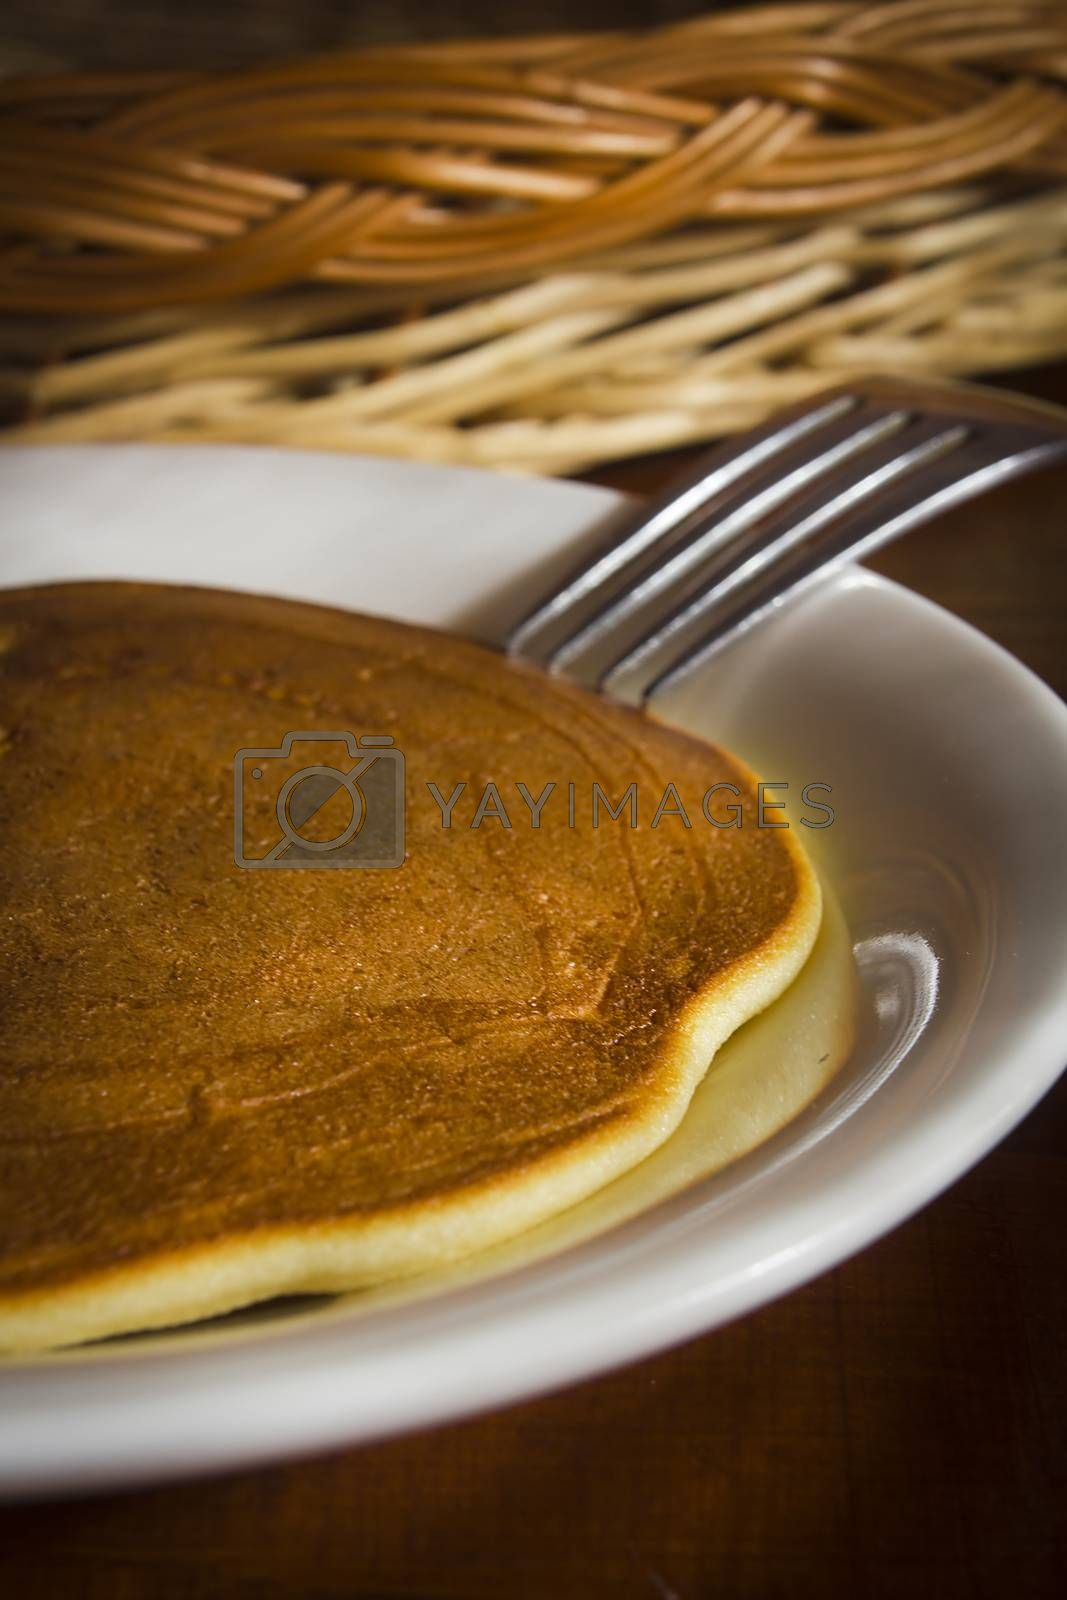 Freshly baked pancake on a plate on a wooden table